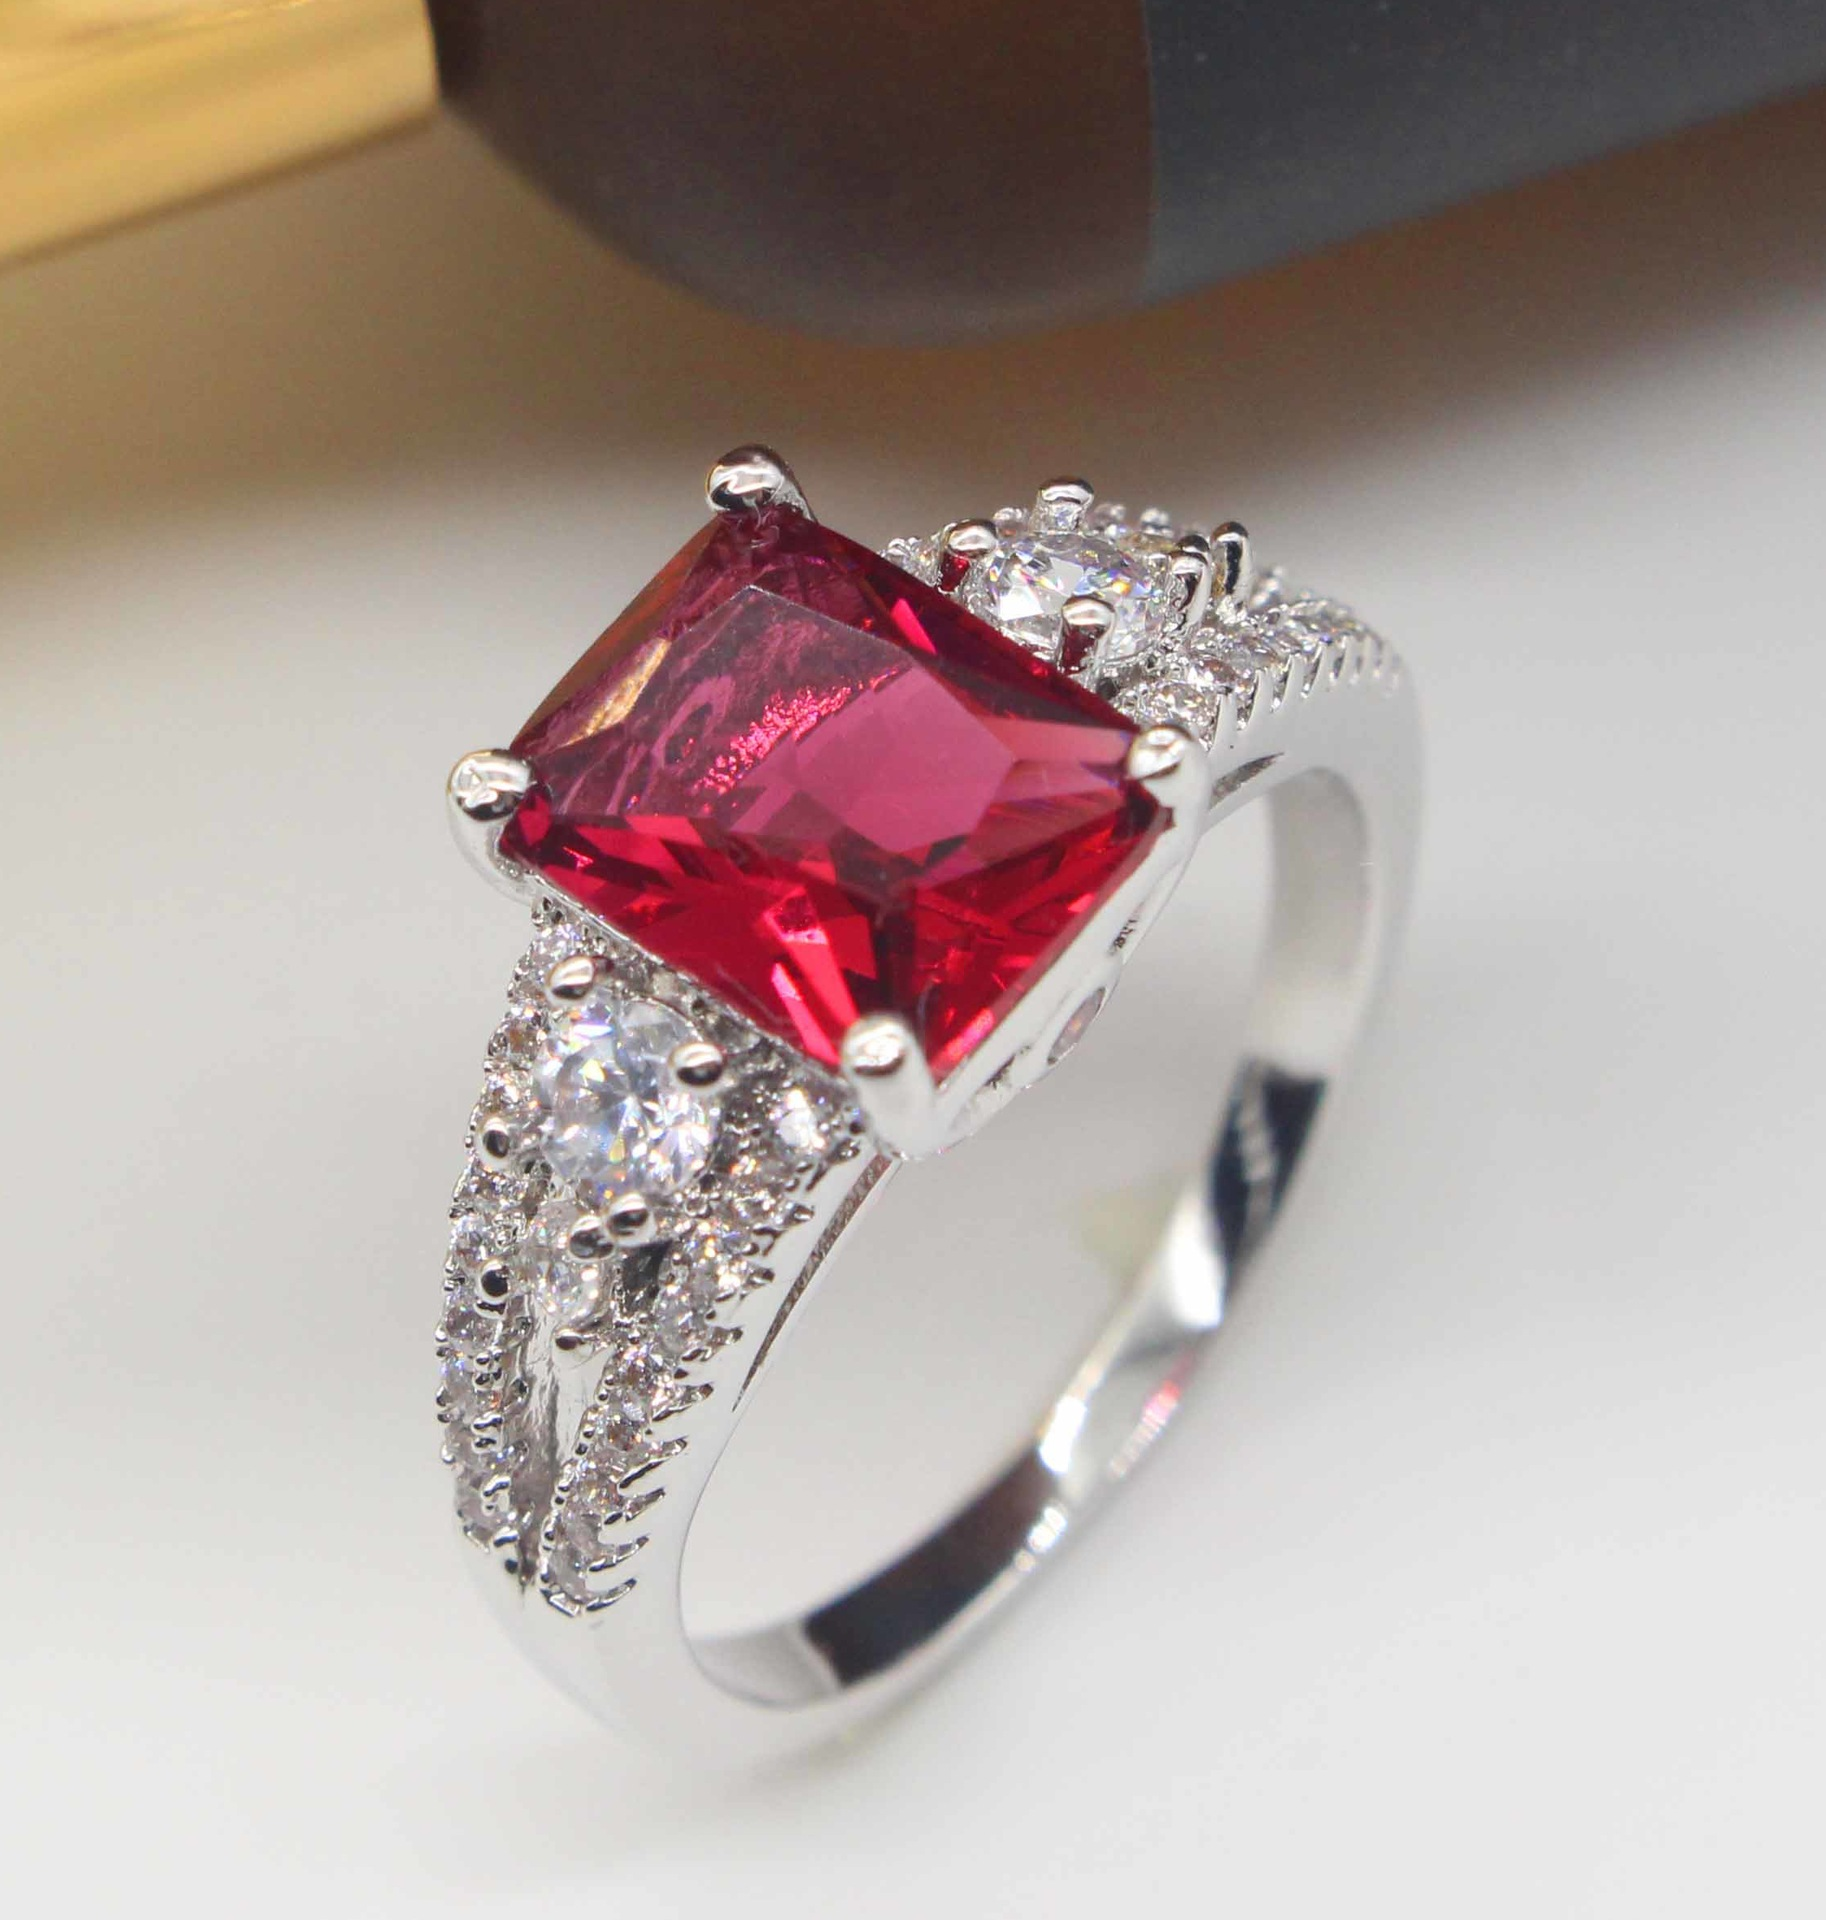 fashion italian 925 sterling silver wedding rings for women cz jewelry engagement red crystal ring gift - Wedding Rings Prices